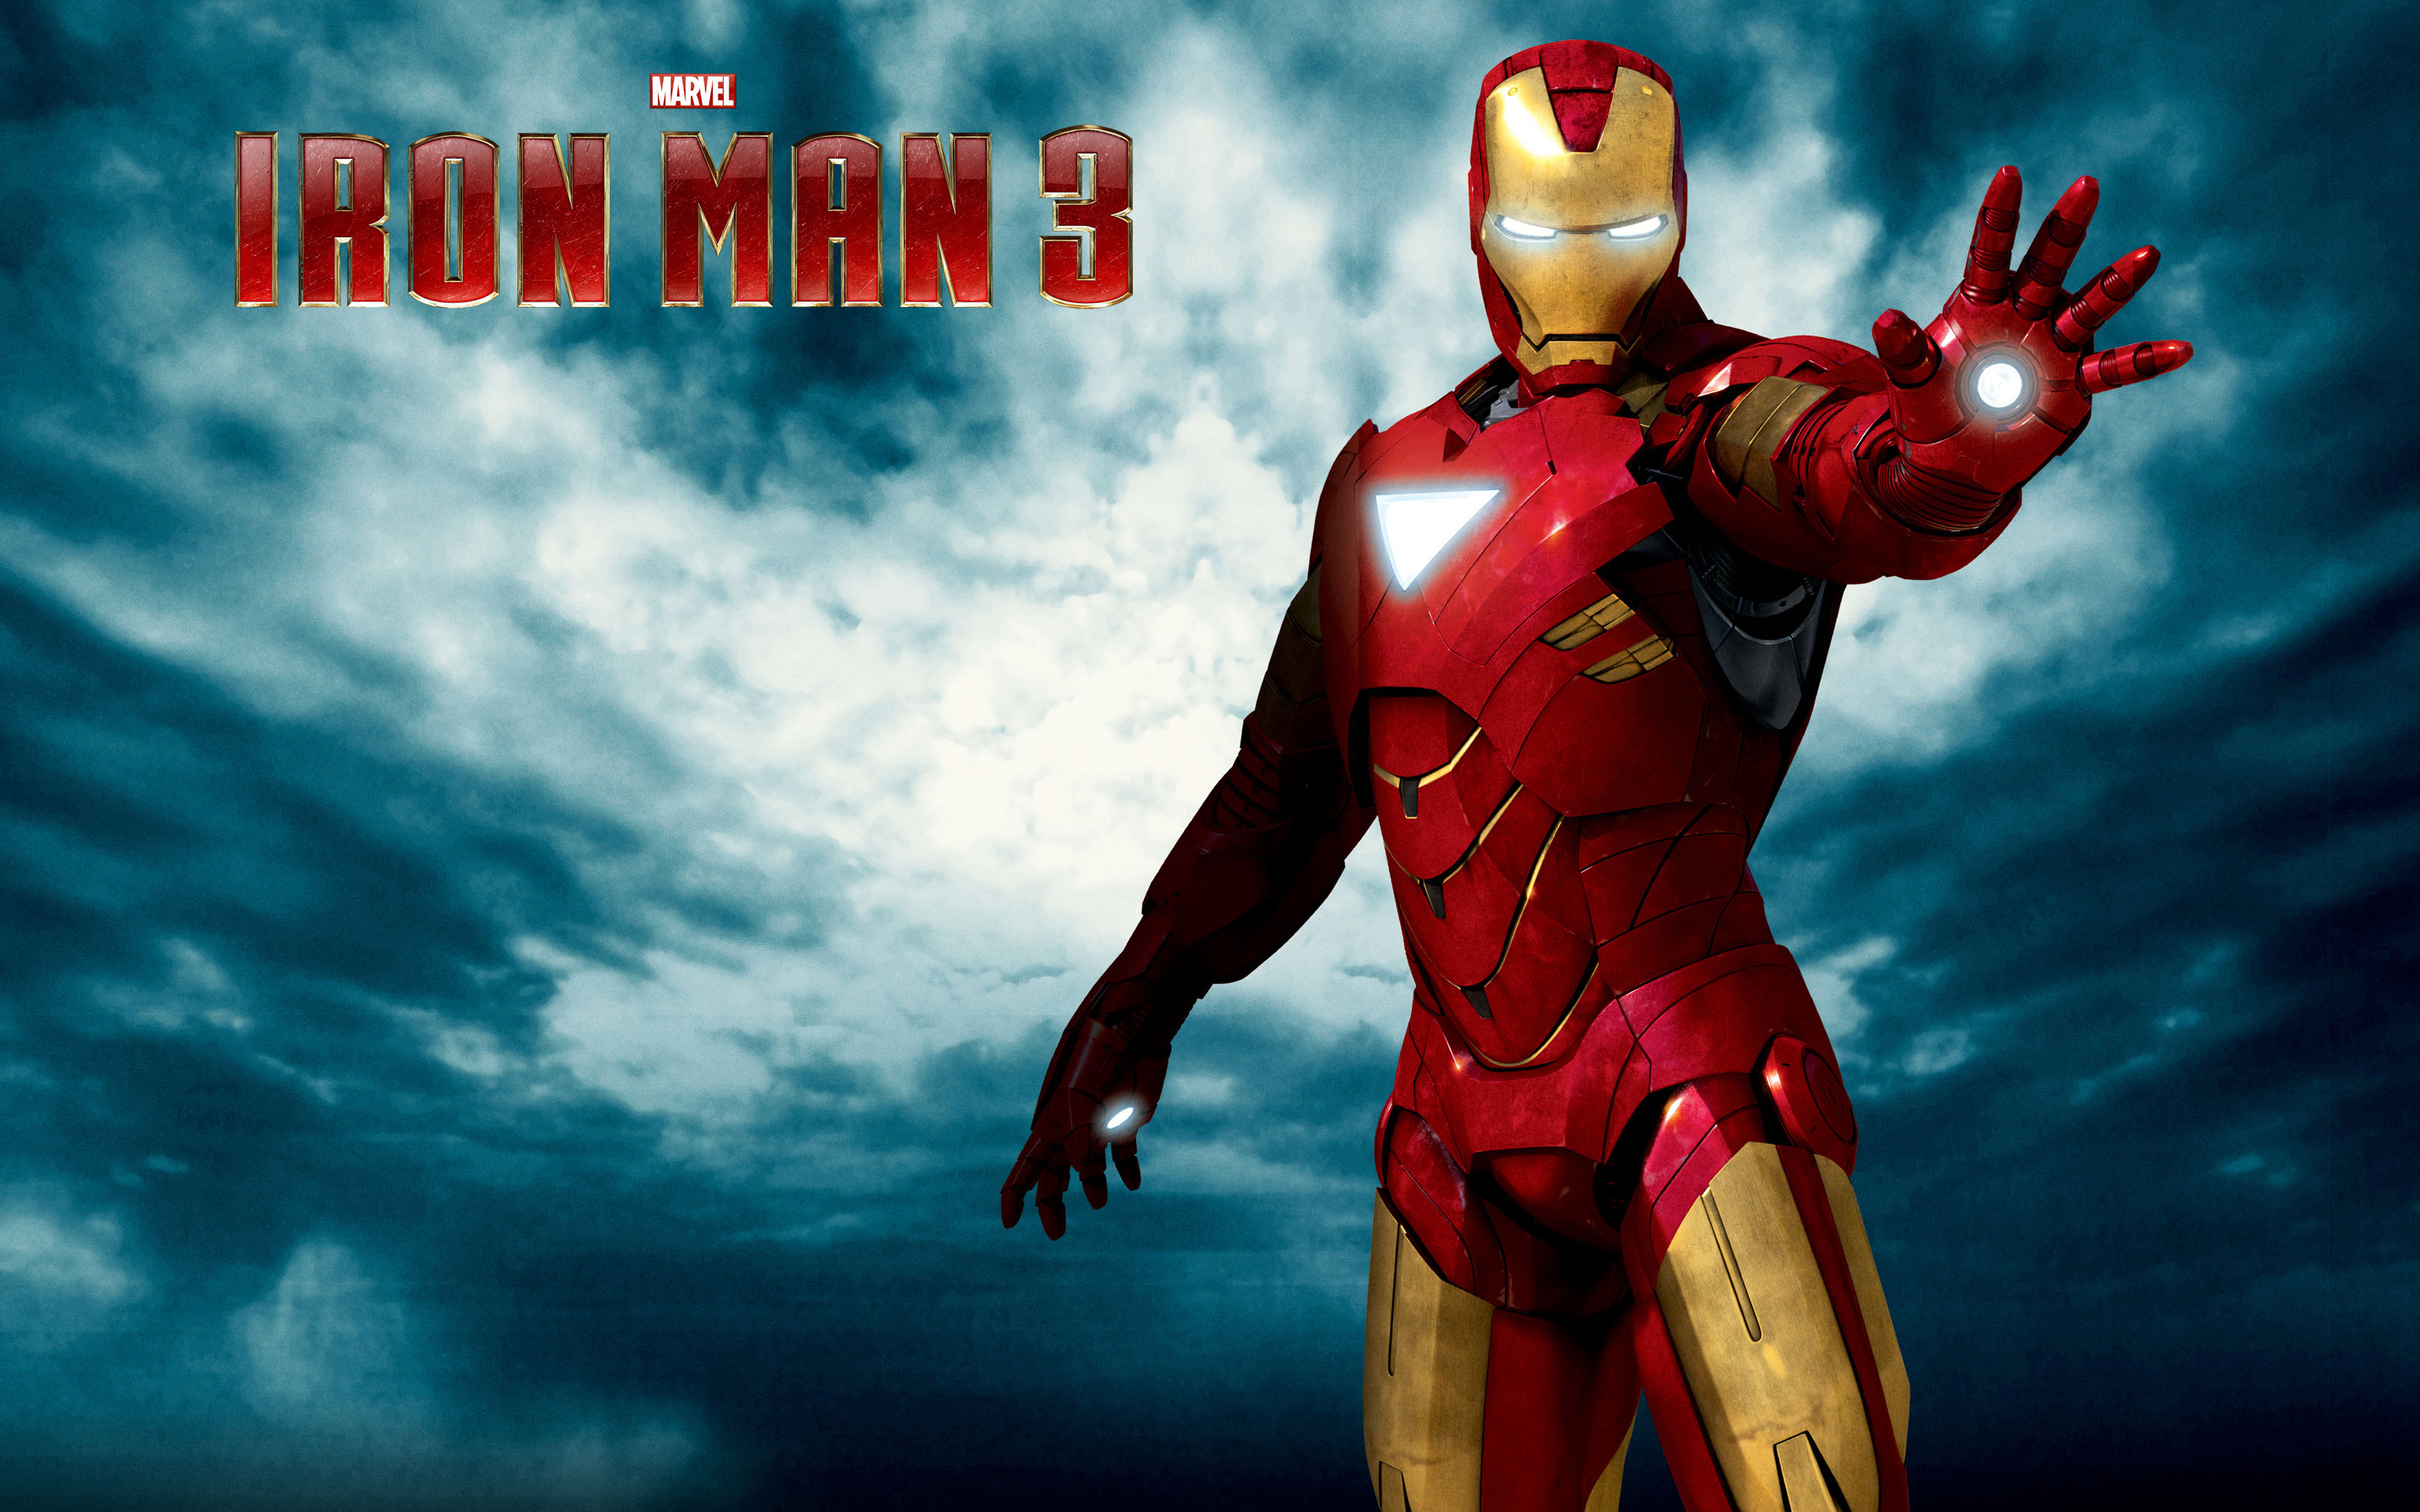 They're propstars an interview with the men behind iron man's arc